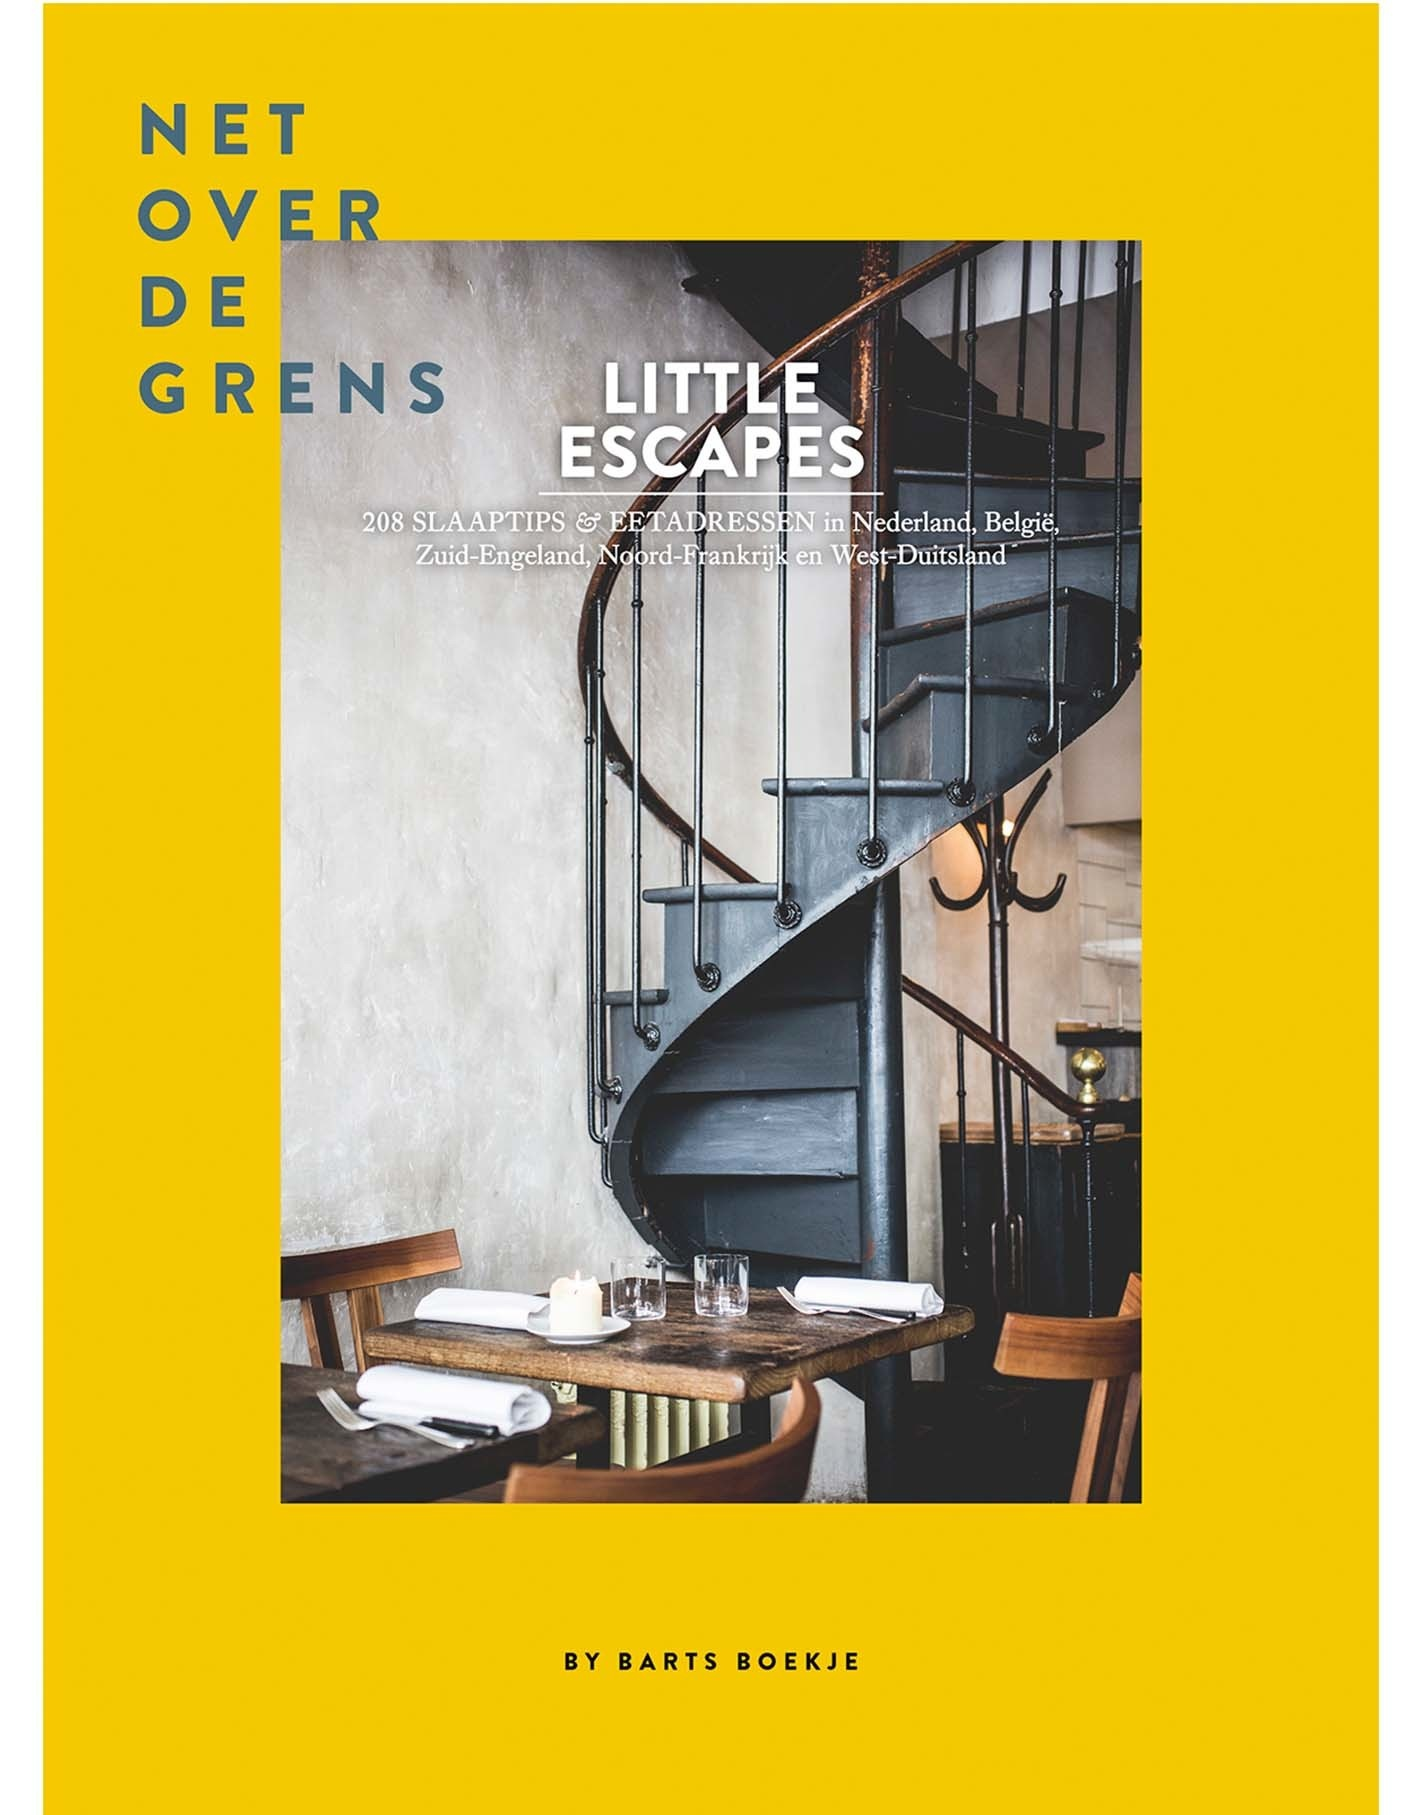 Little Escapes - 208 Slaaptips & Eetadressen Net Over De Grens-1